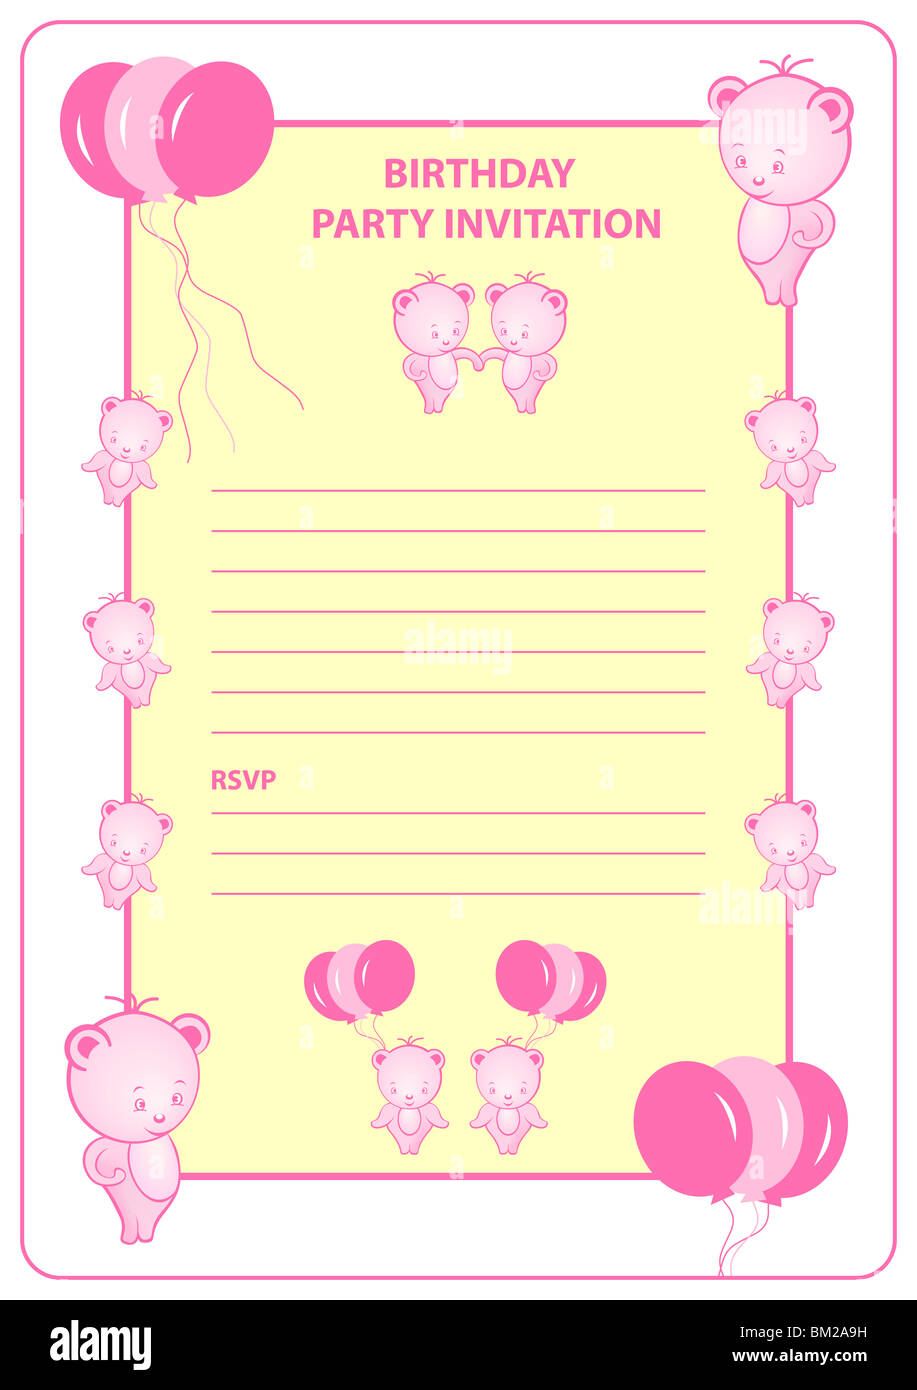 girls birthday party invitation card with pink cartoon bears and